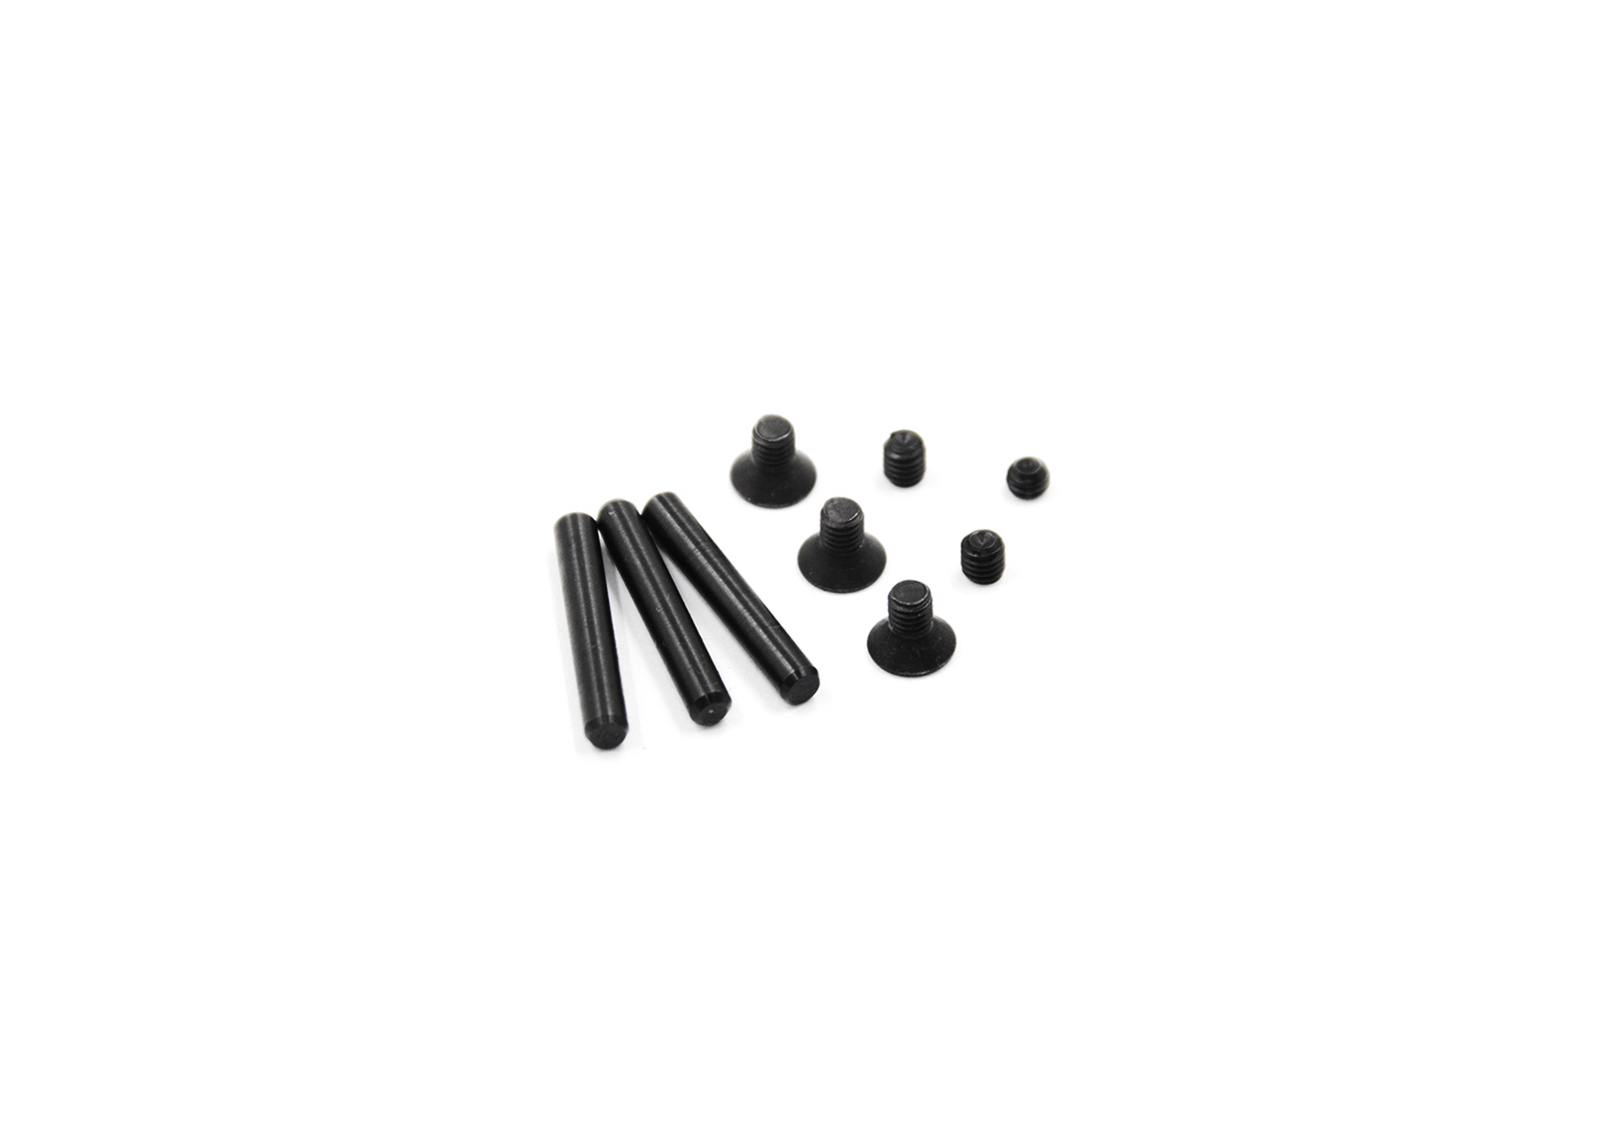 PP-2K Barrel-Receiver screw and combine pin set